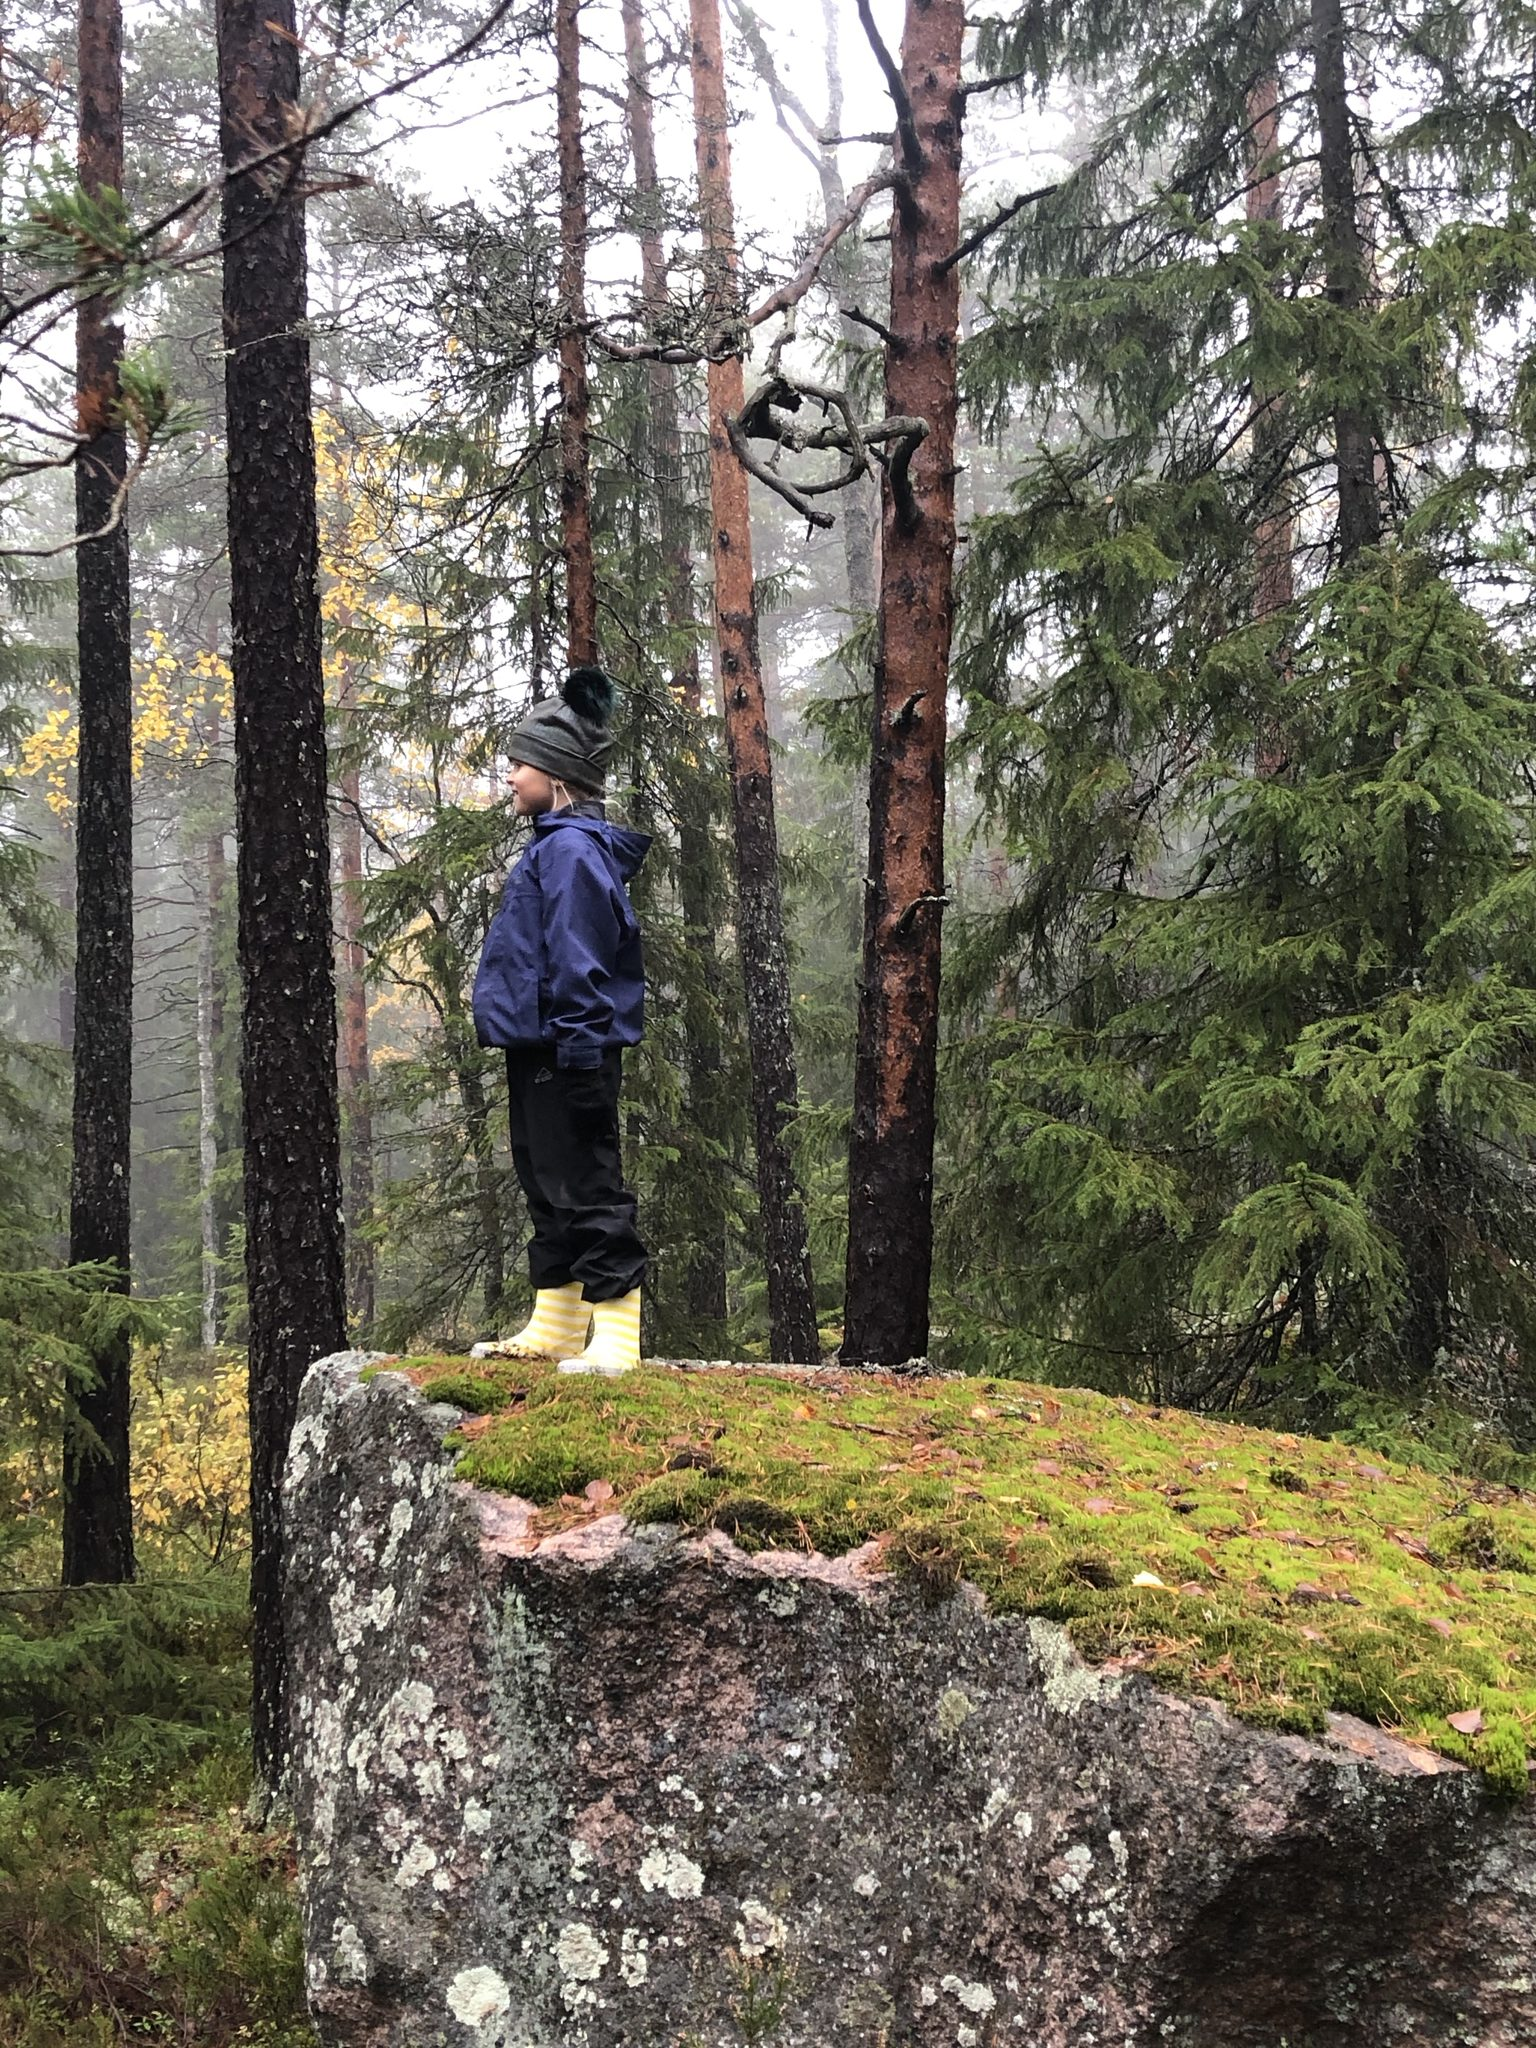 Guided tour of Lohja, also for accessible traveller